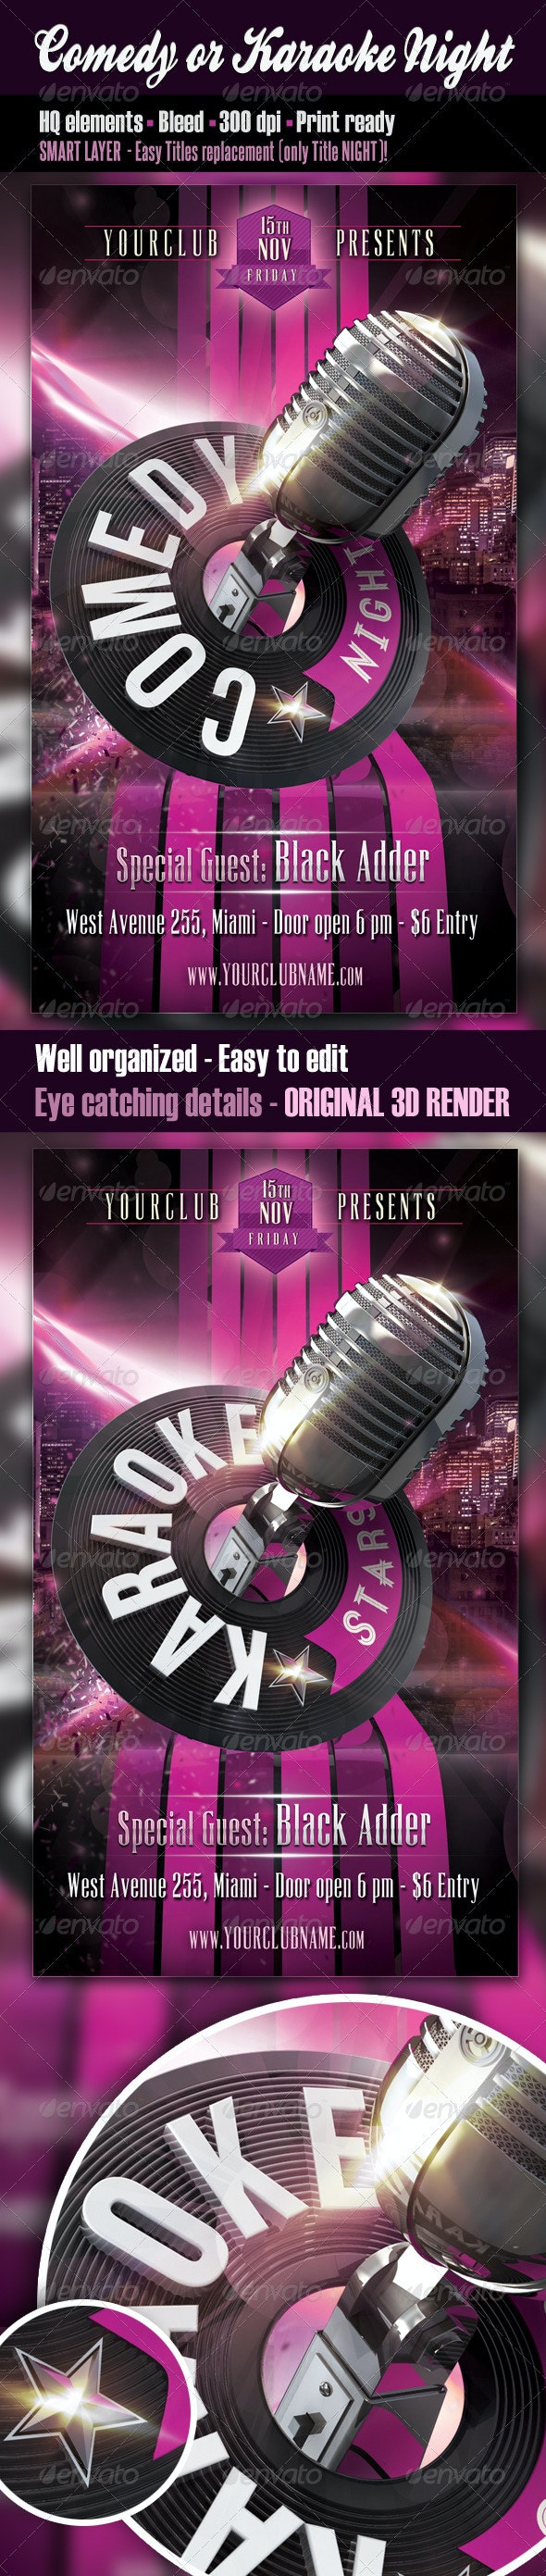 Comedy or Karaoke Night Flyer - Clubs & Parties Events